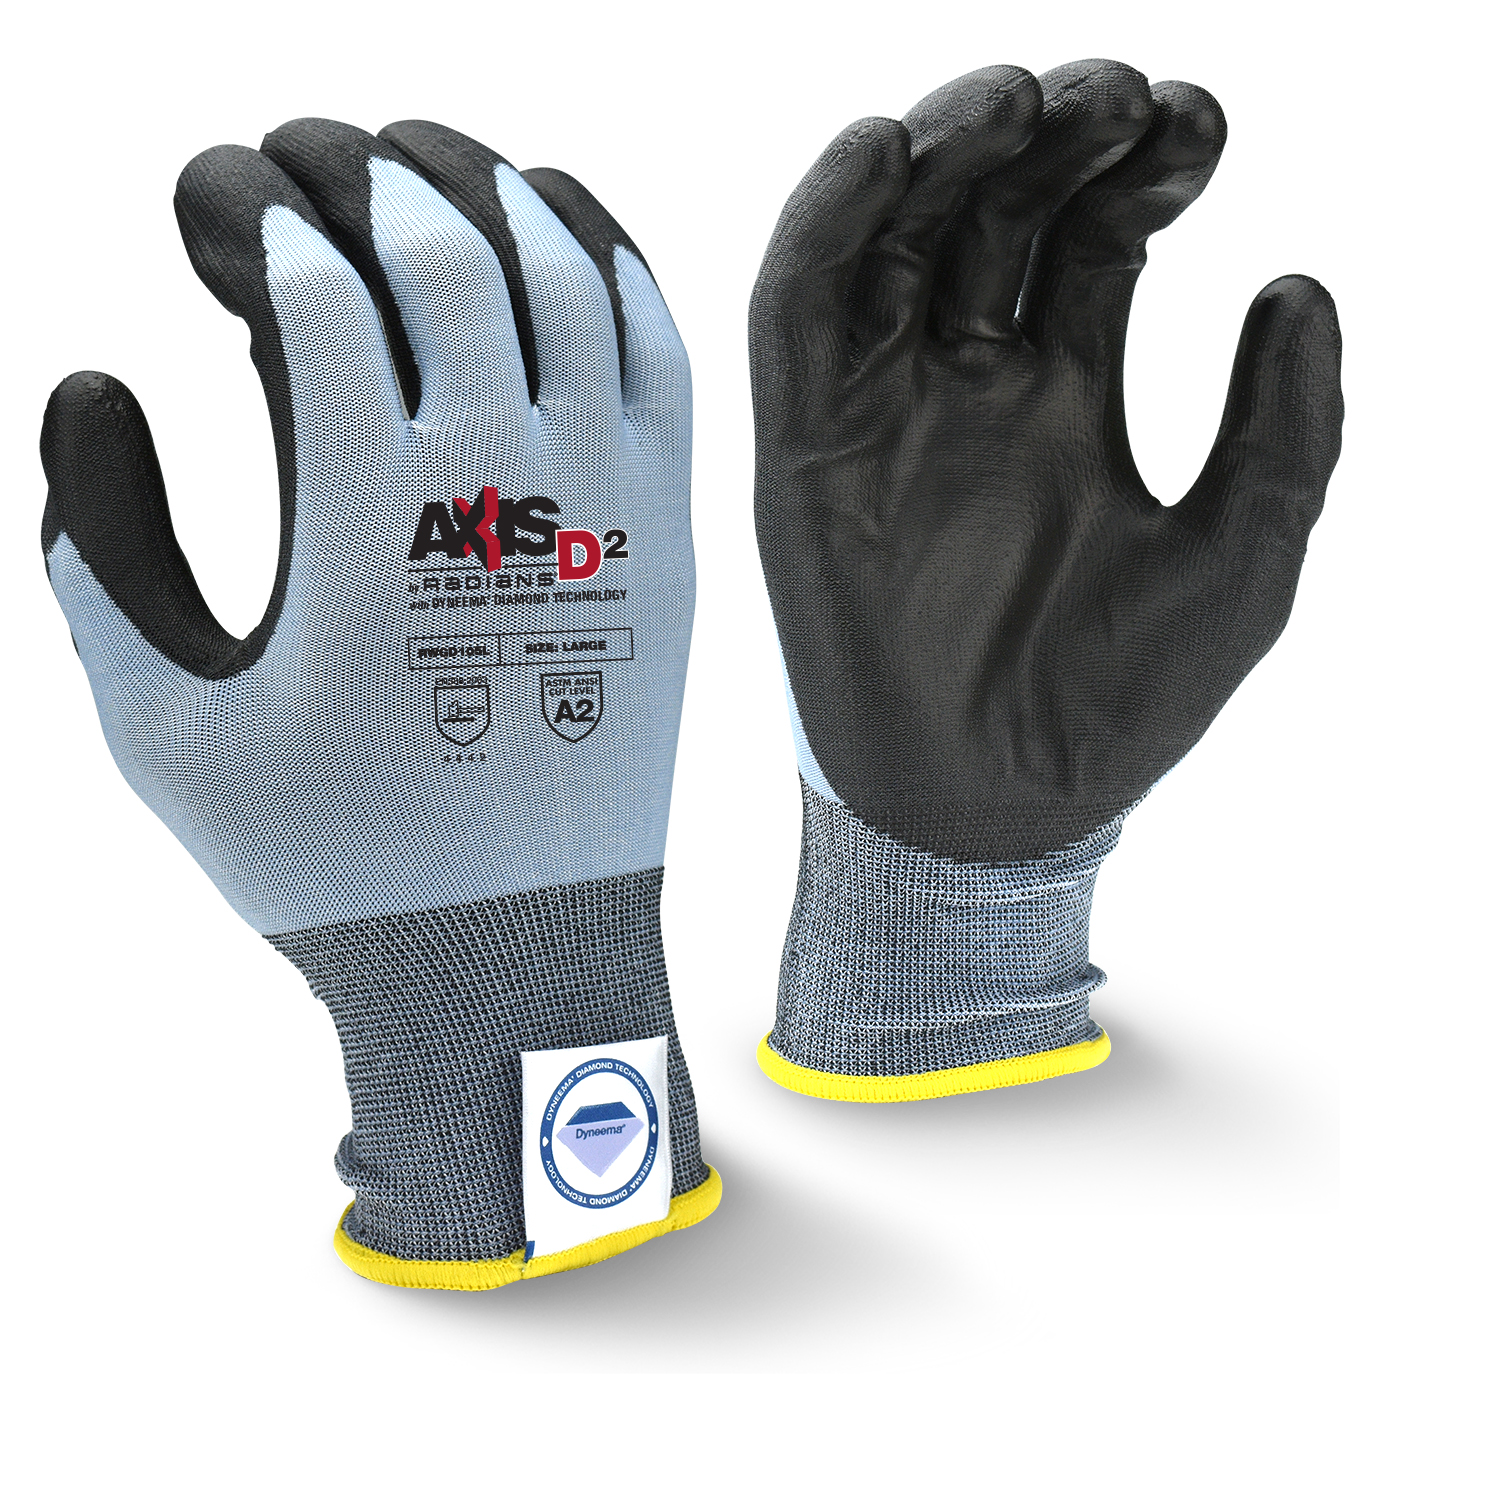 Radians RWGD105 AXIS D2™ Dyneema® Cut Protection Level A2 Glove